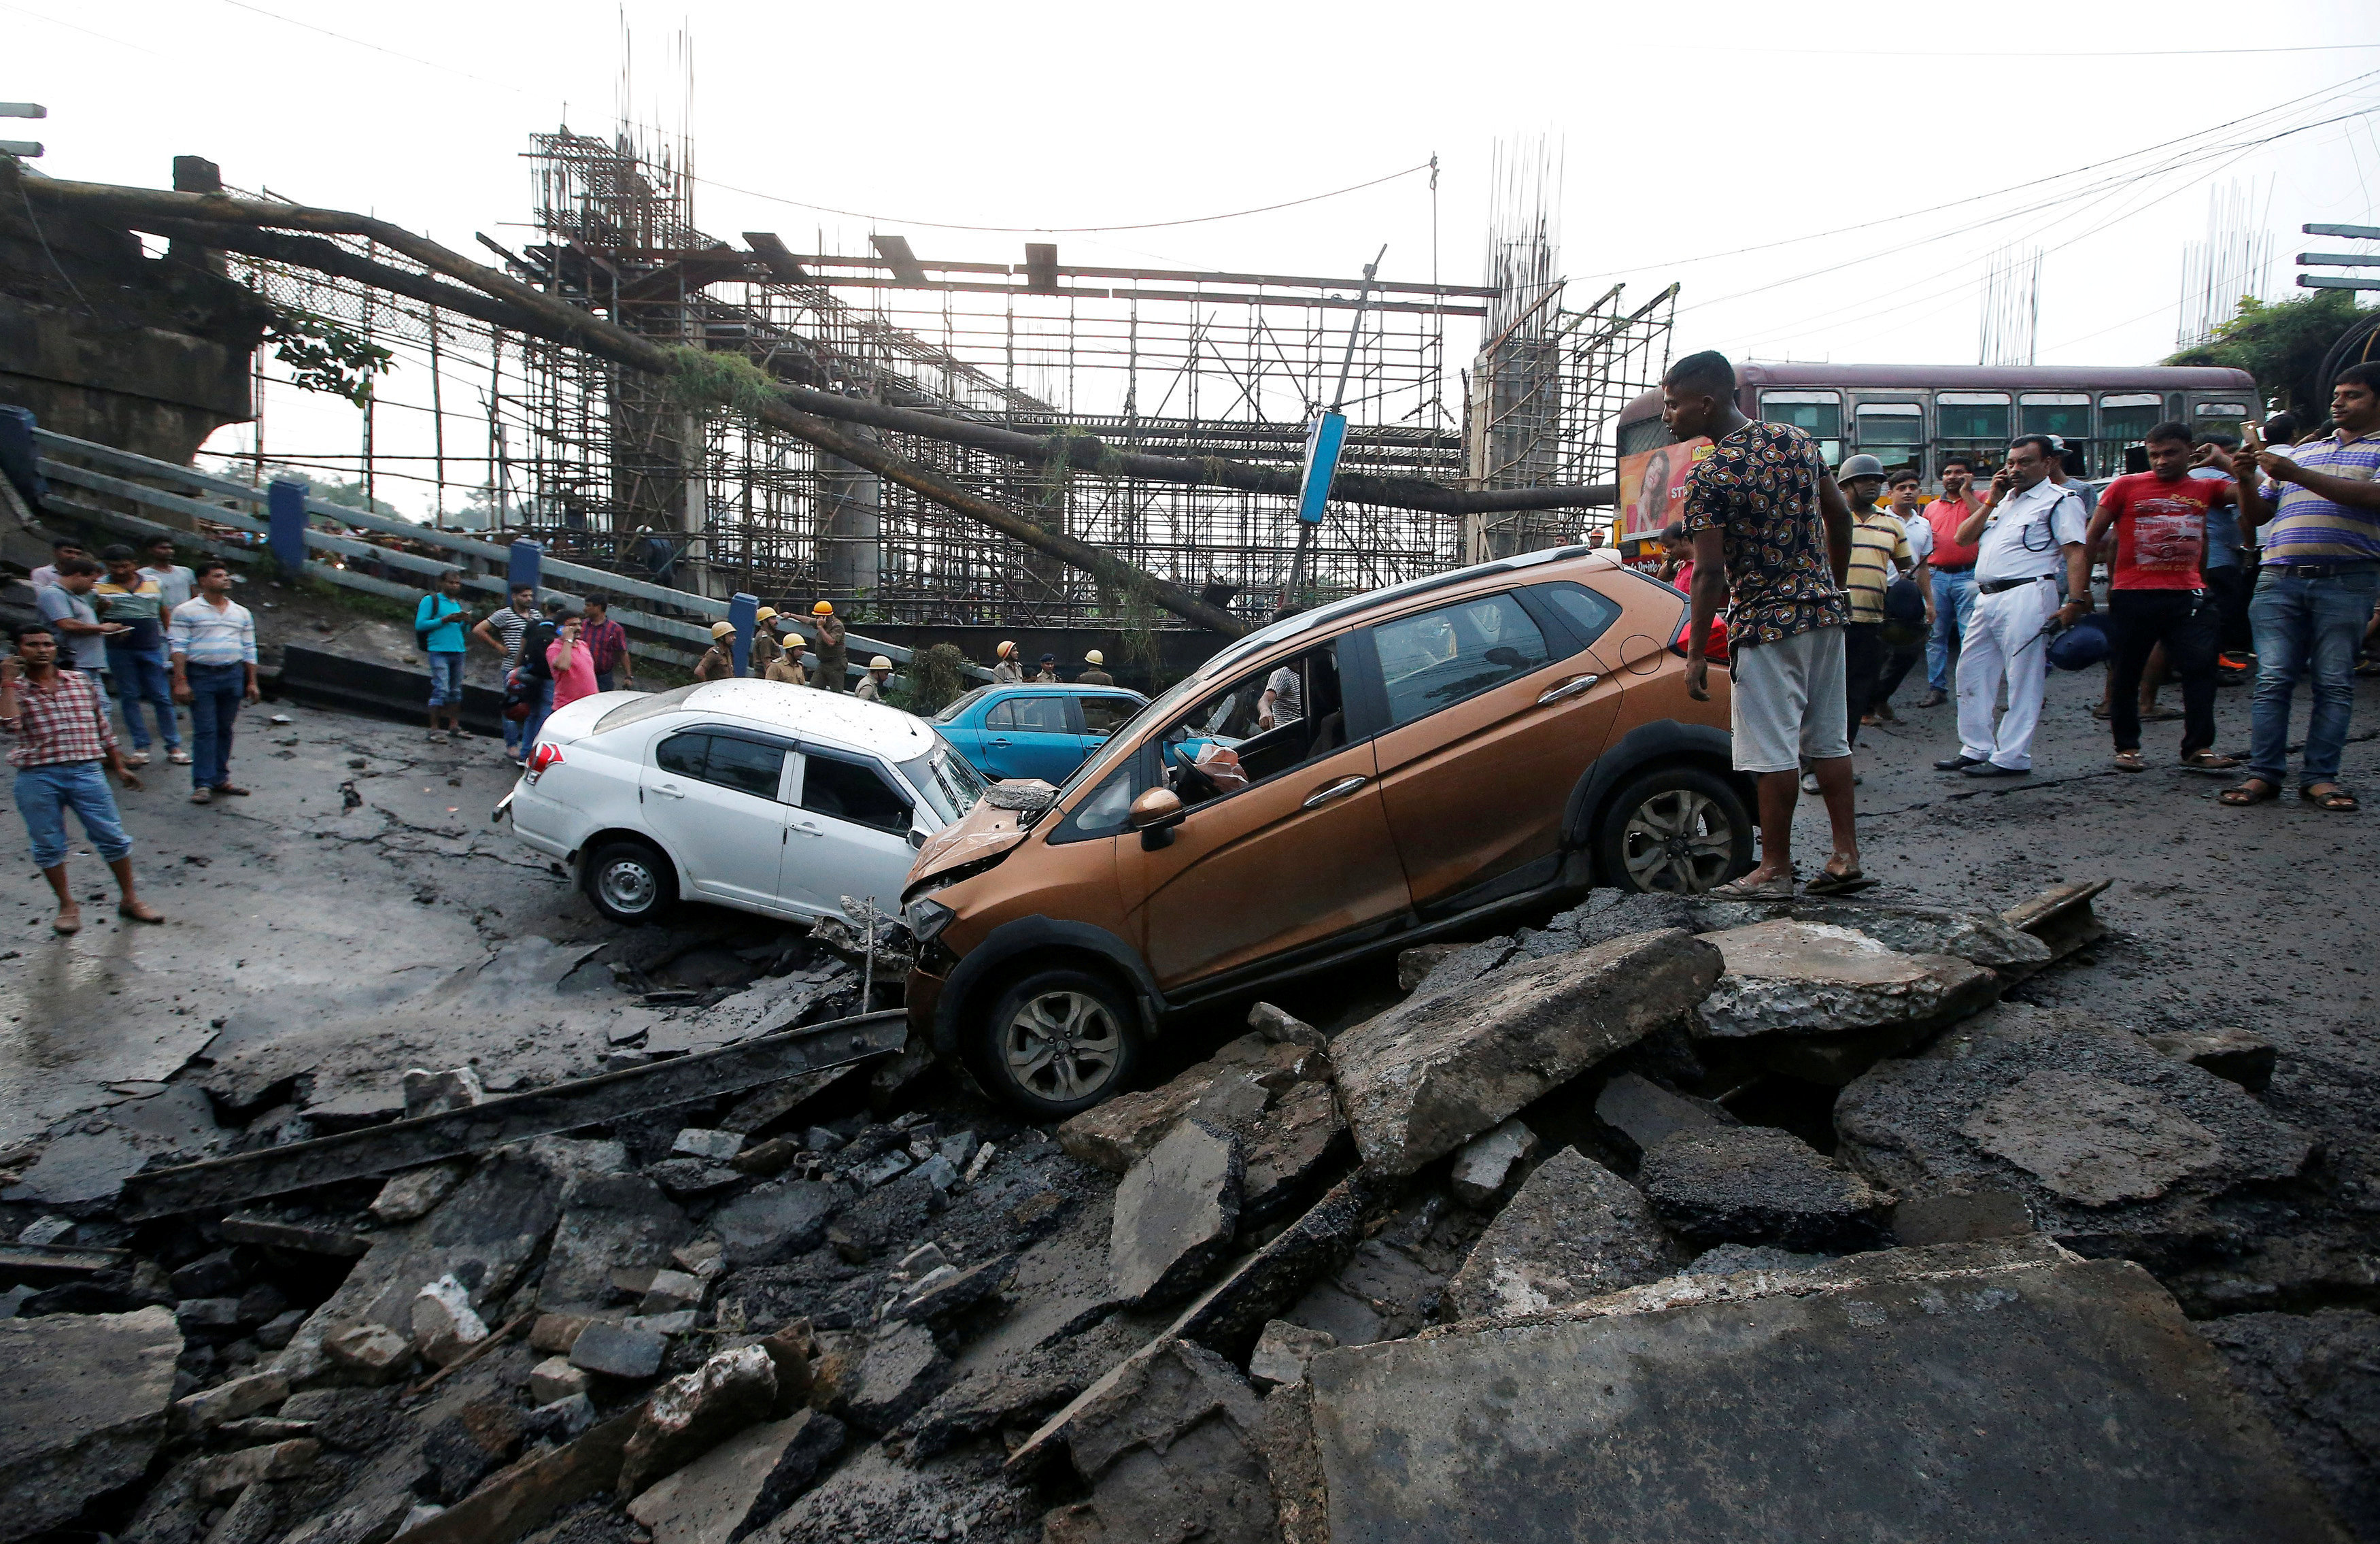 People stand next to the wreckage of vehicles at the site of a bridge that collapsed in Kolkata, India September 4, 2018.